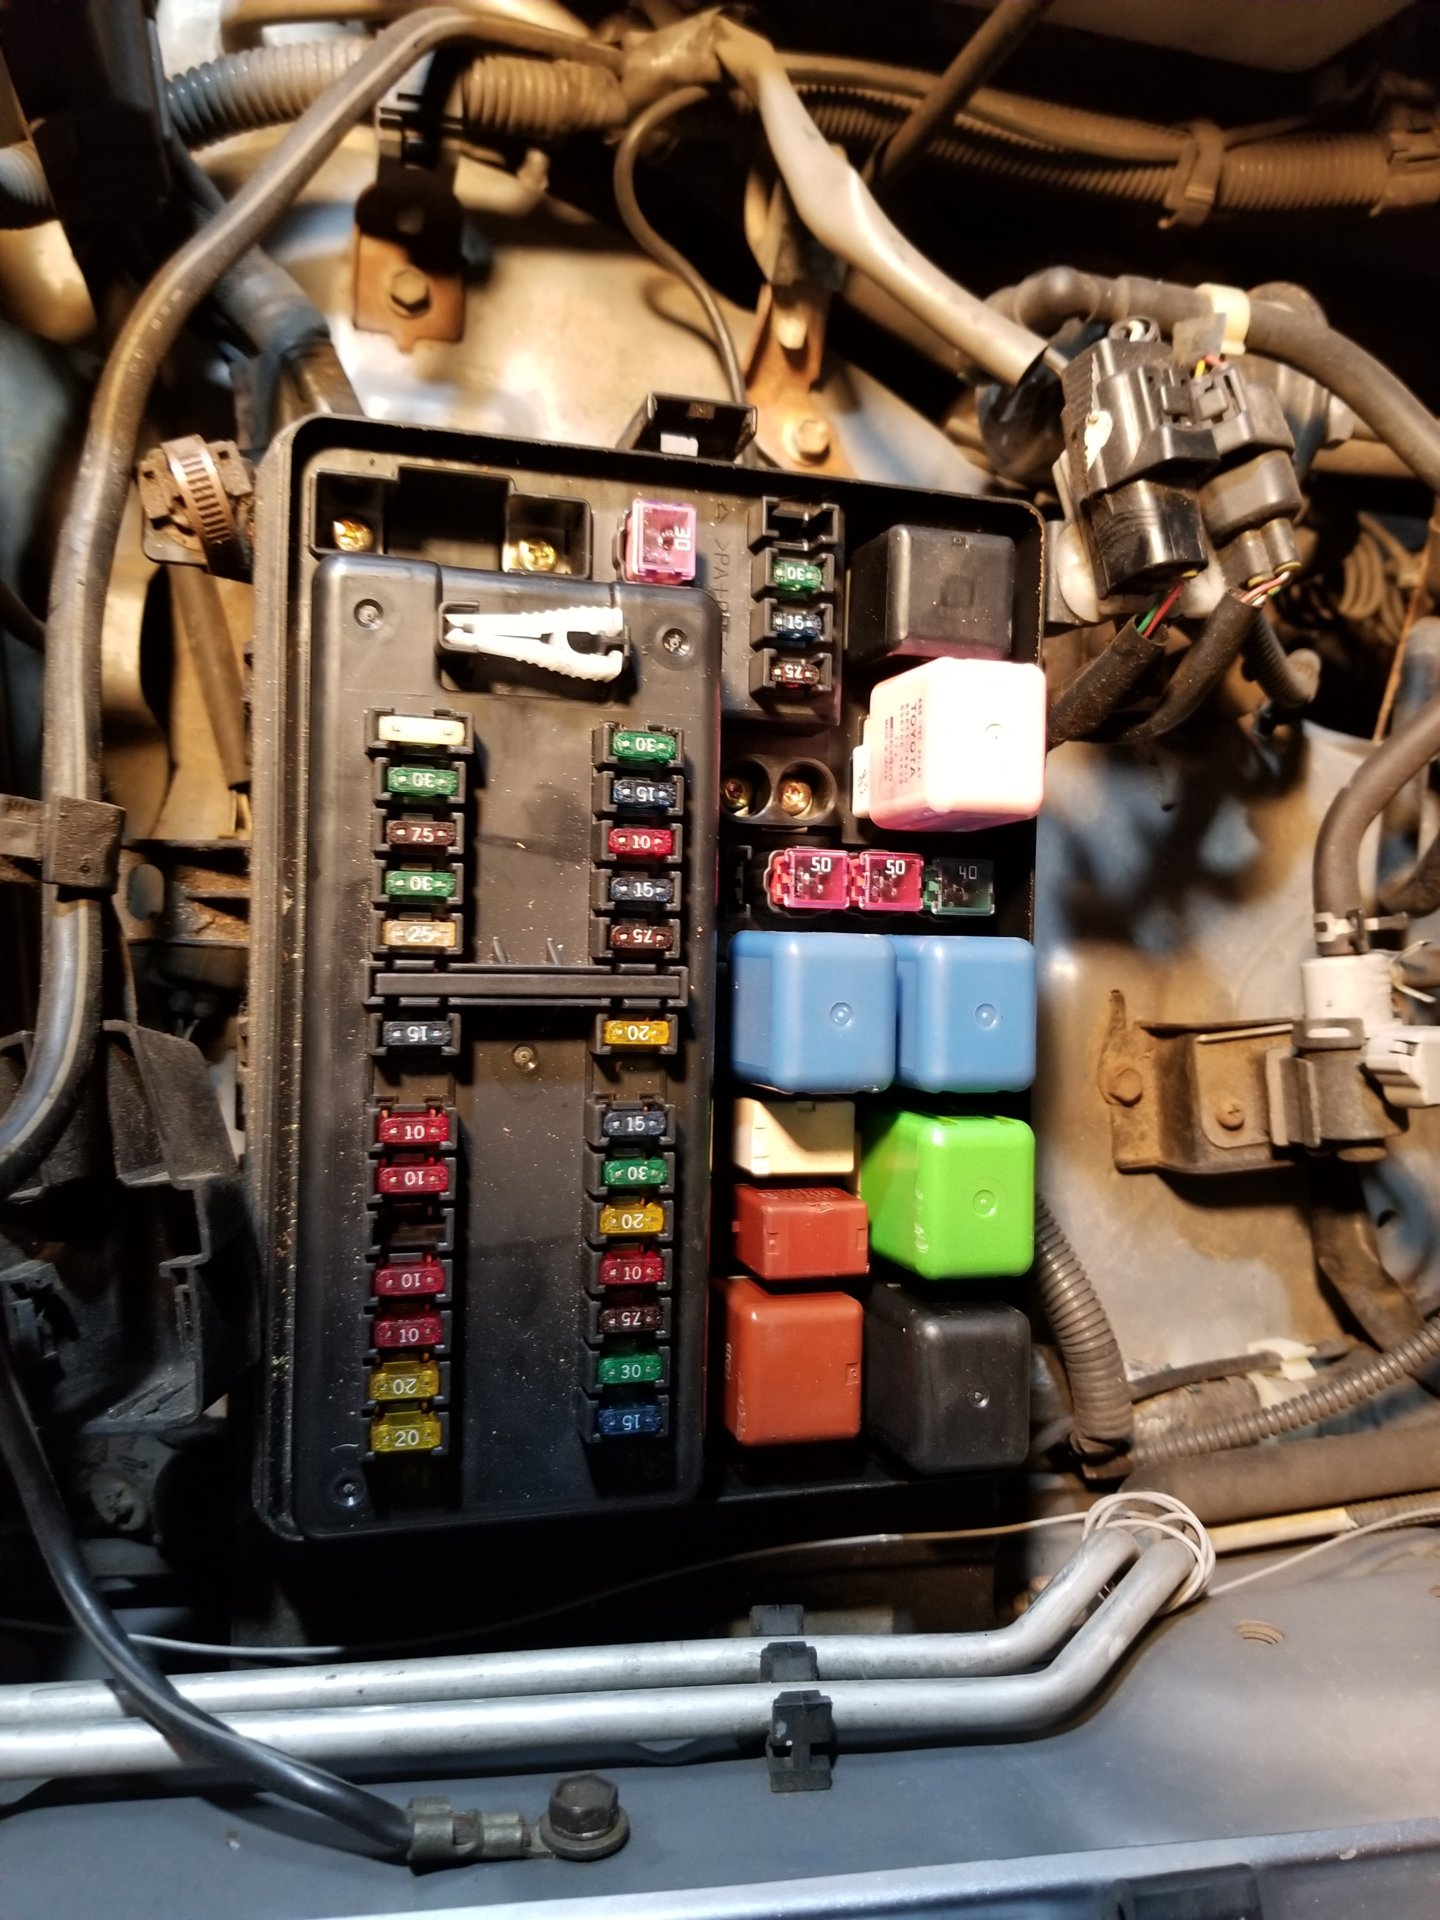 hight resolution of ac magnetic clutch relay location on 2003 lx470